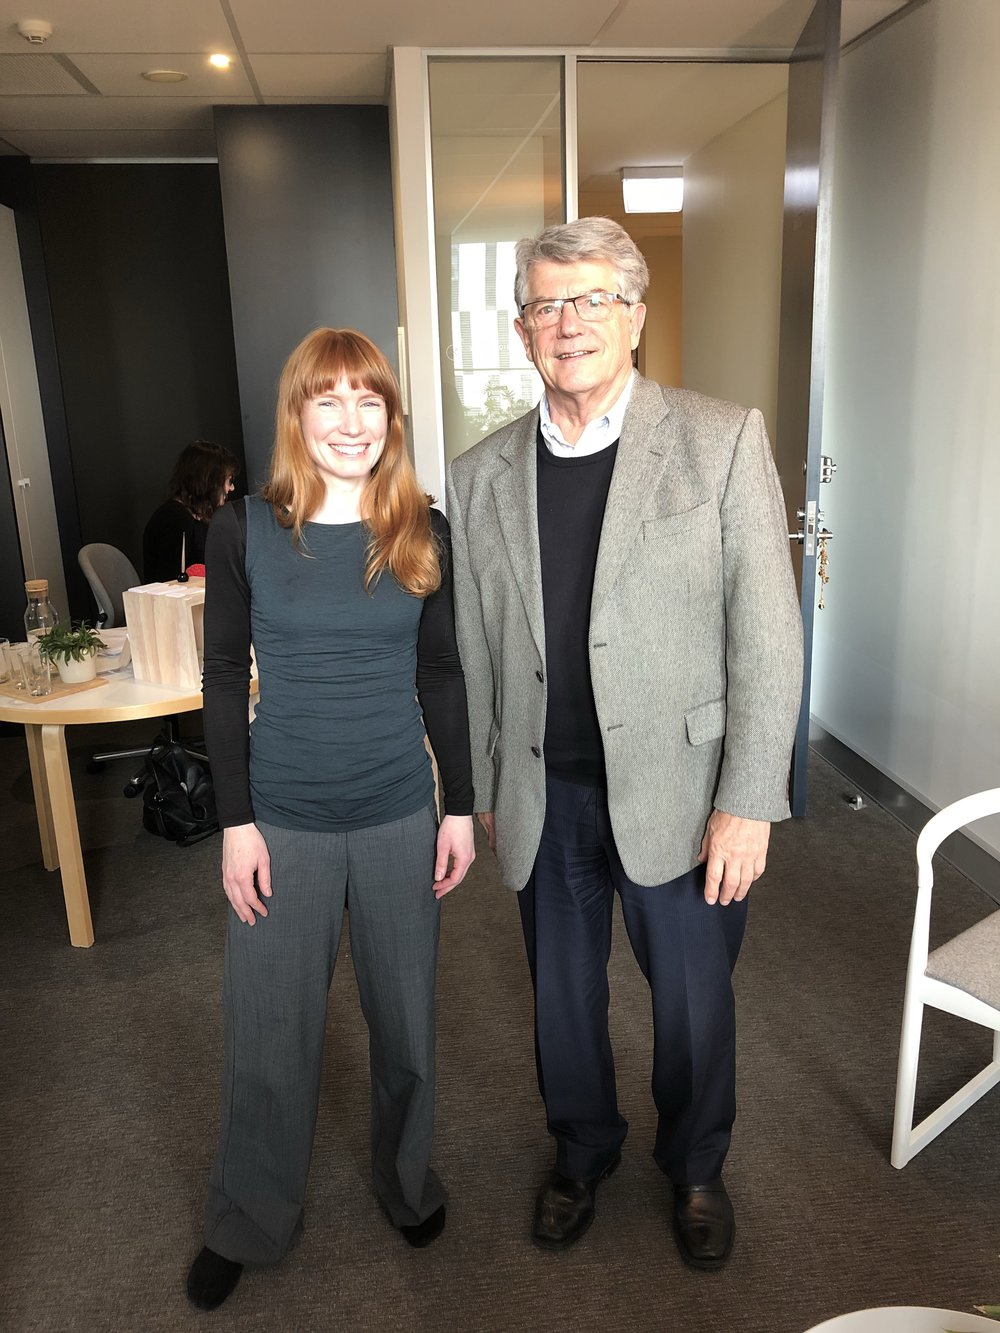 #bringinguscloser - Professor Claude Bernard, Internationally renowned MS researcher with Jane Costello